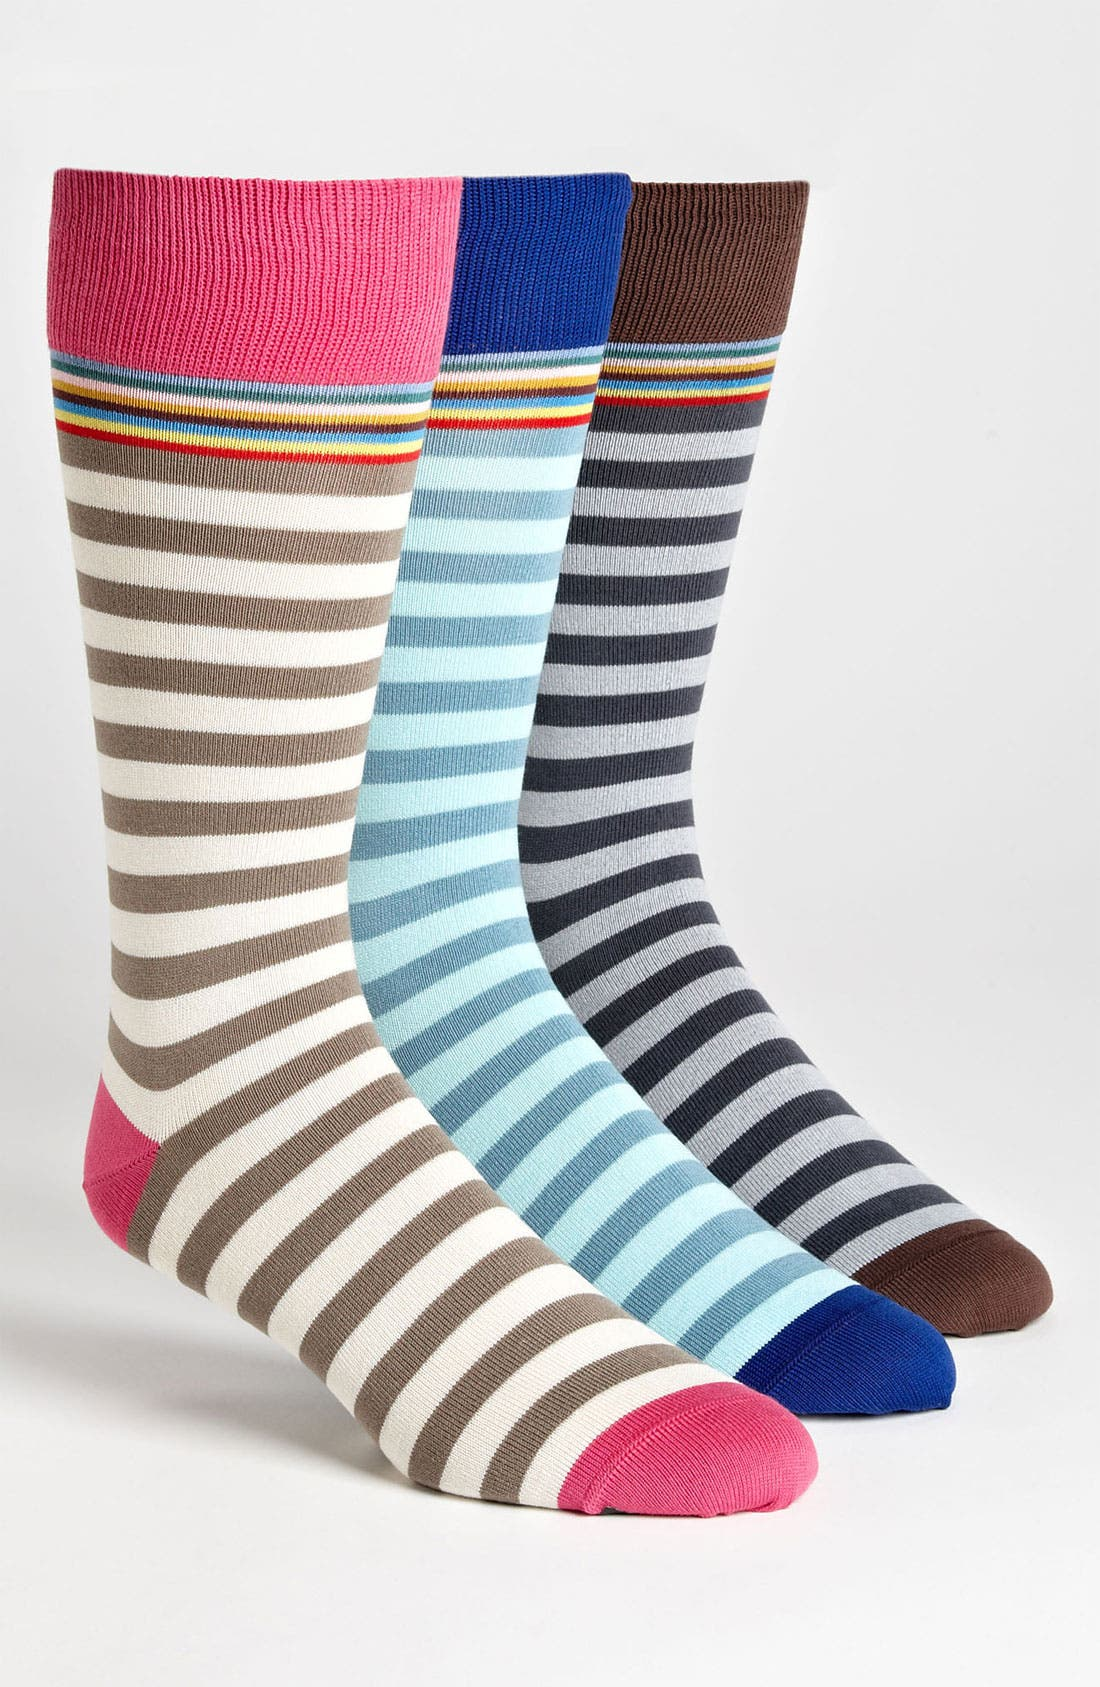 Main Image - Paul Smith Accessories Print Socks (3-Pack)